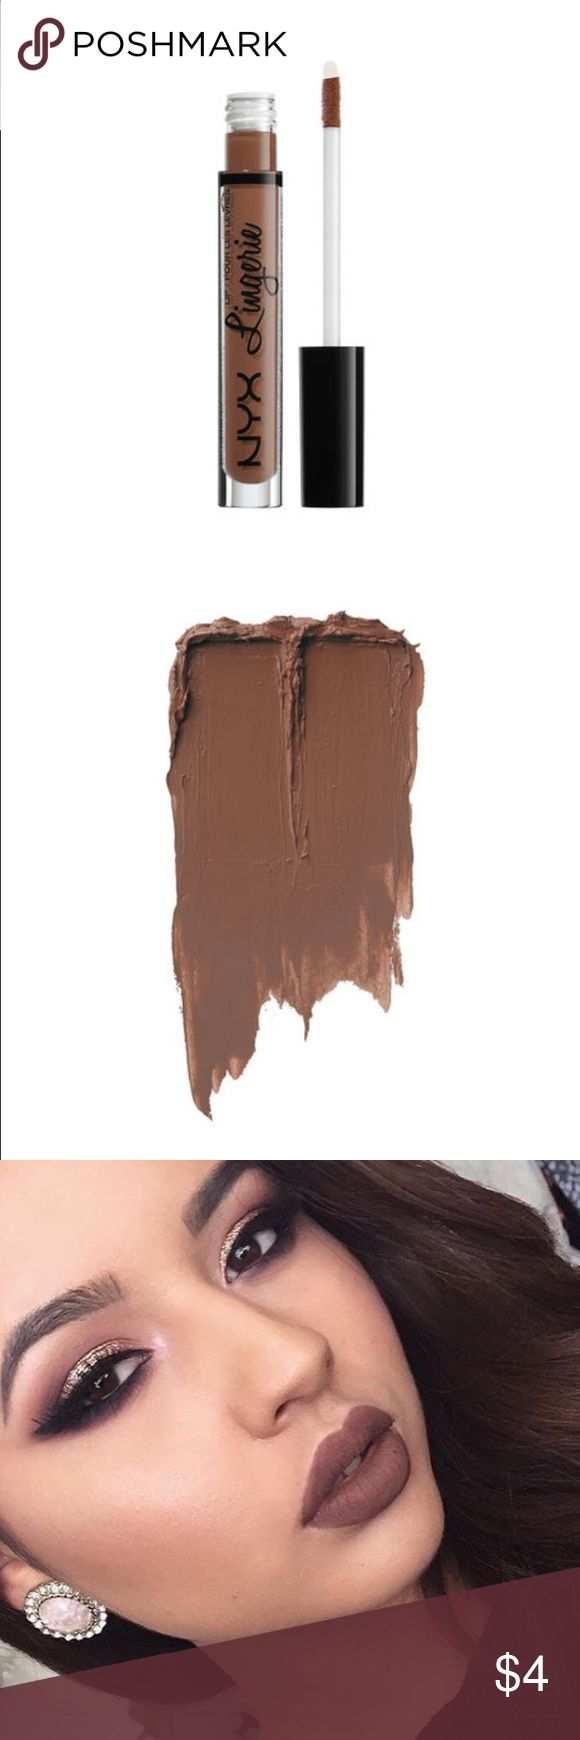 Lip Lingerie Liquid Lipstick This is a chocolate brown, a very gorgeous brown nude with some reddish undertones. Very 90's inspired. I feel like this would be something Kylie Jenner would wear on a regular basis so if you wanna rock Kylie Jenner's brown lip trend, this lippie is perfect you NYX cosmetics Makeup Lipstick